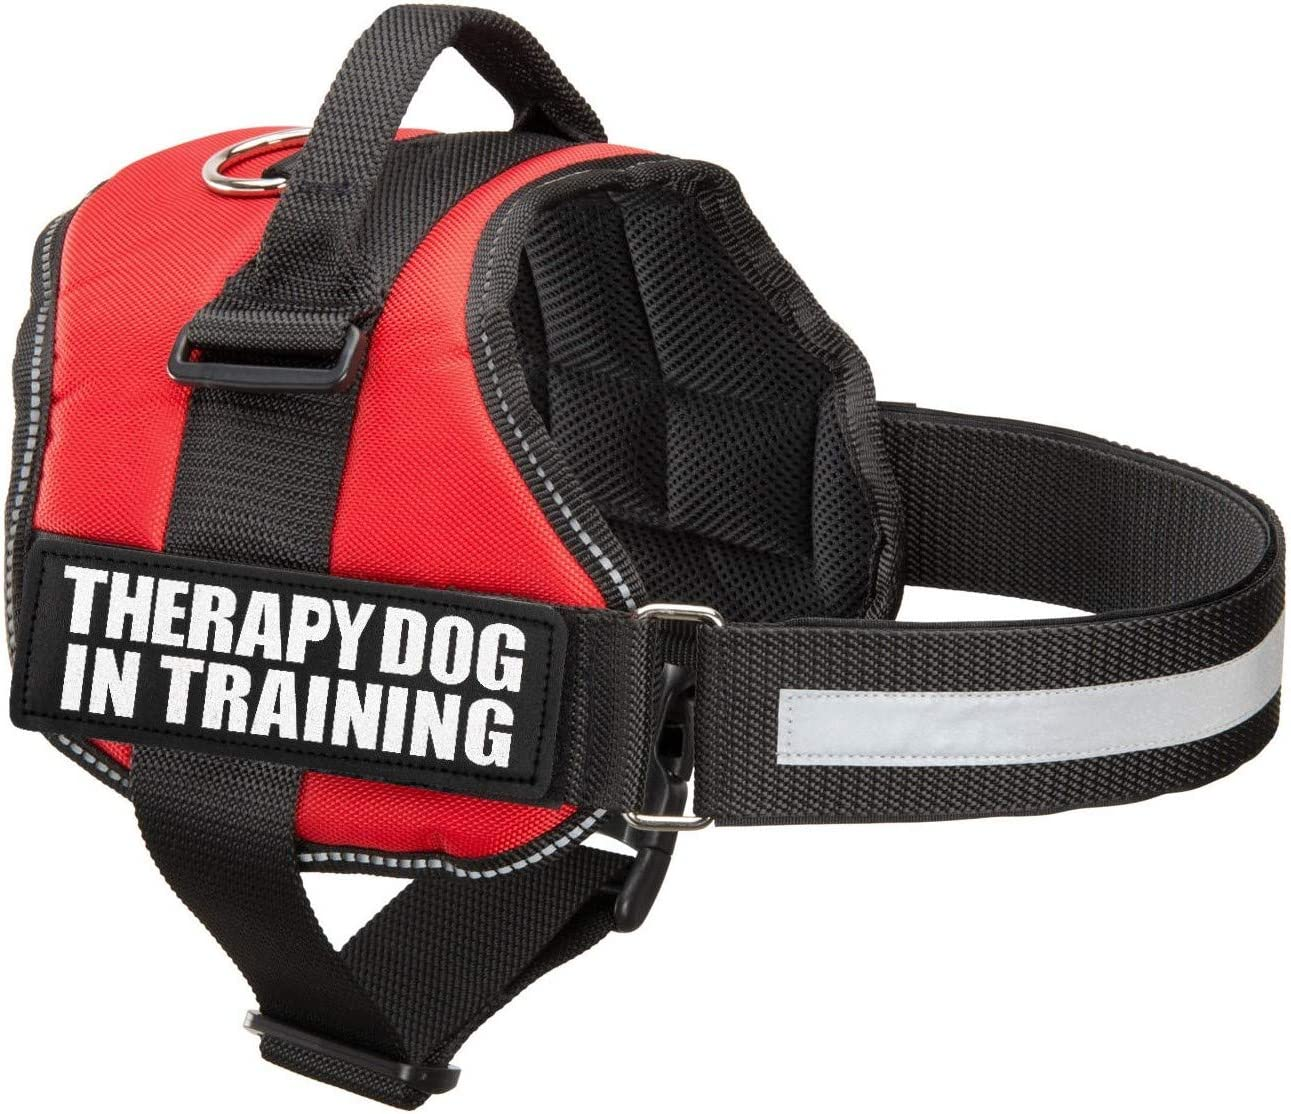 Industrial Puppy Therapy Dog in Training Vest with Hook and Loop Straps and Handle - Harness is Available in XXS to XXL